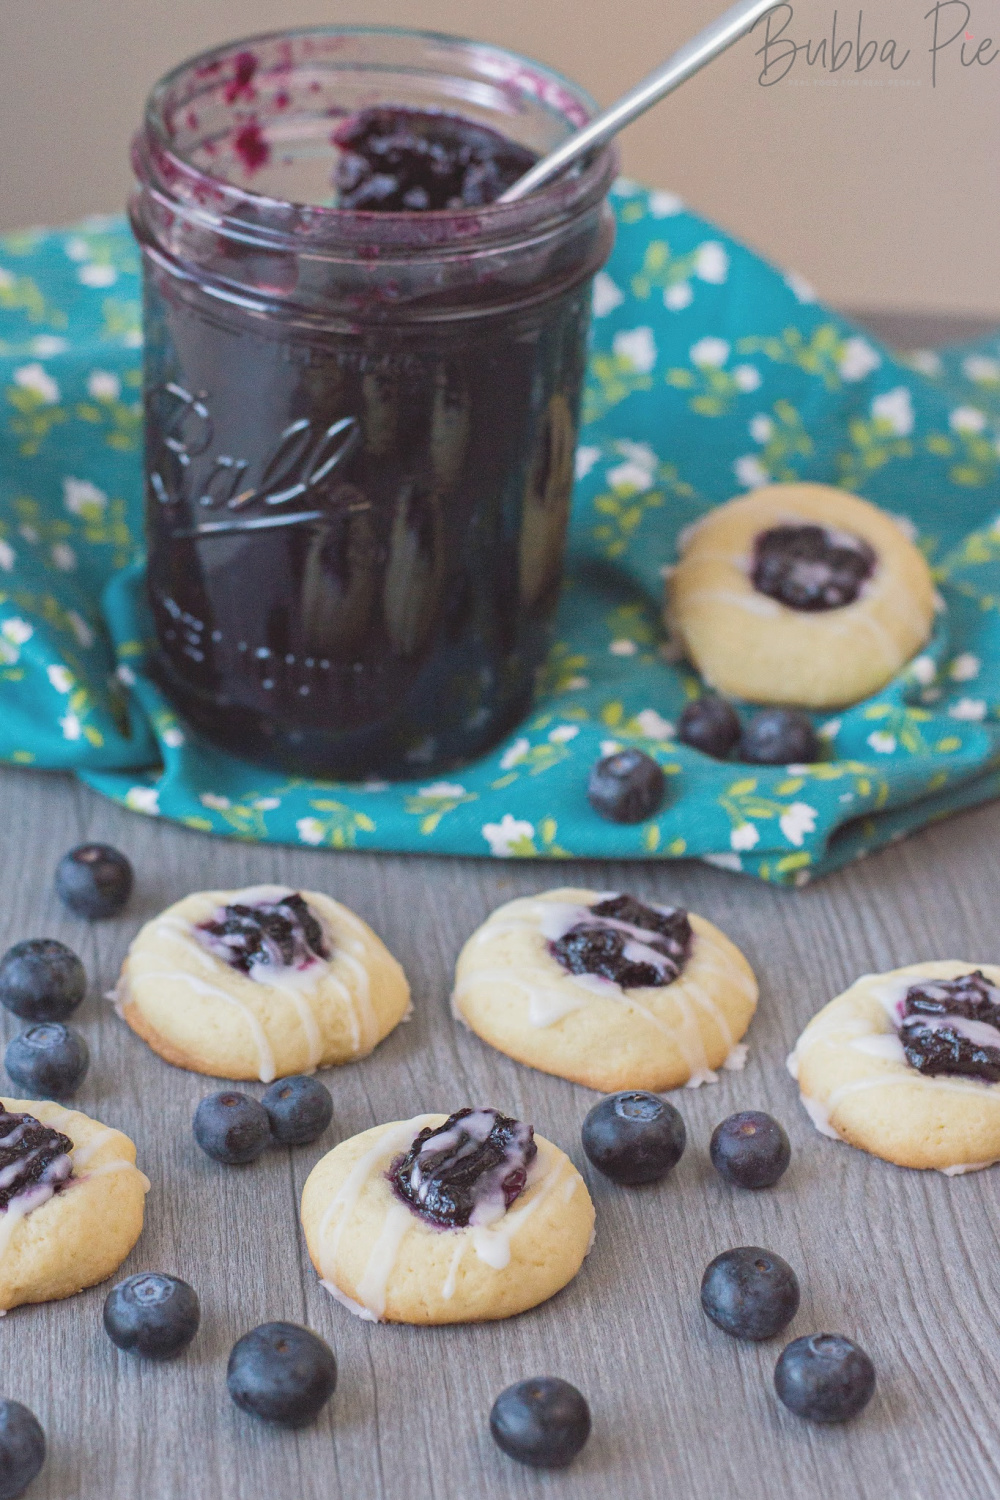 Blueberry Thumbprint Cookies with icing